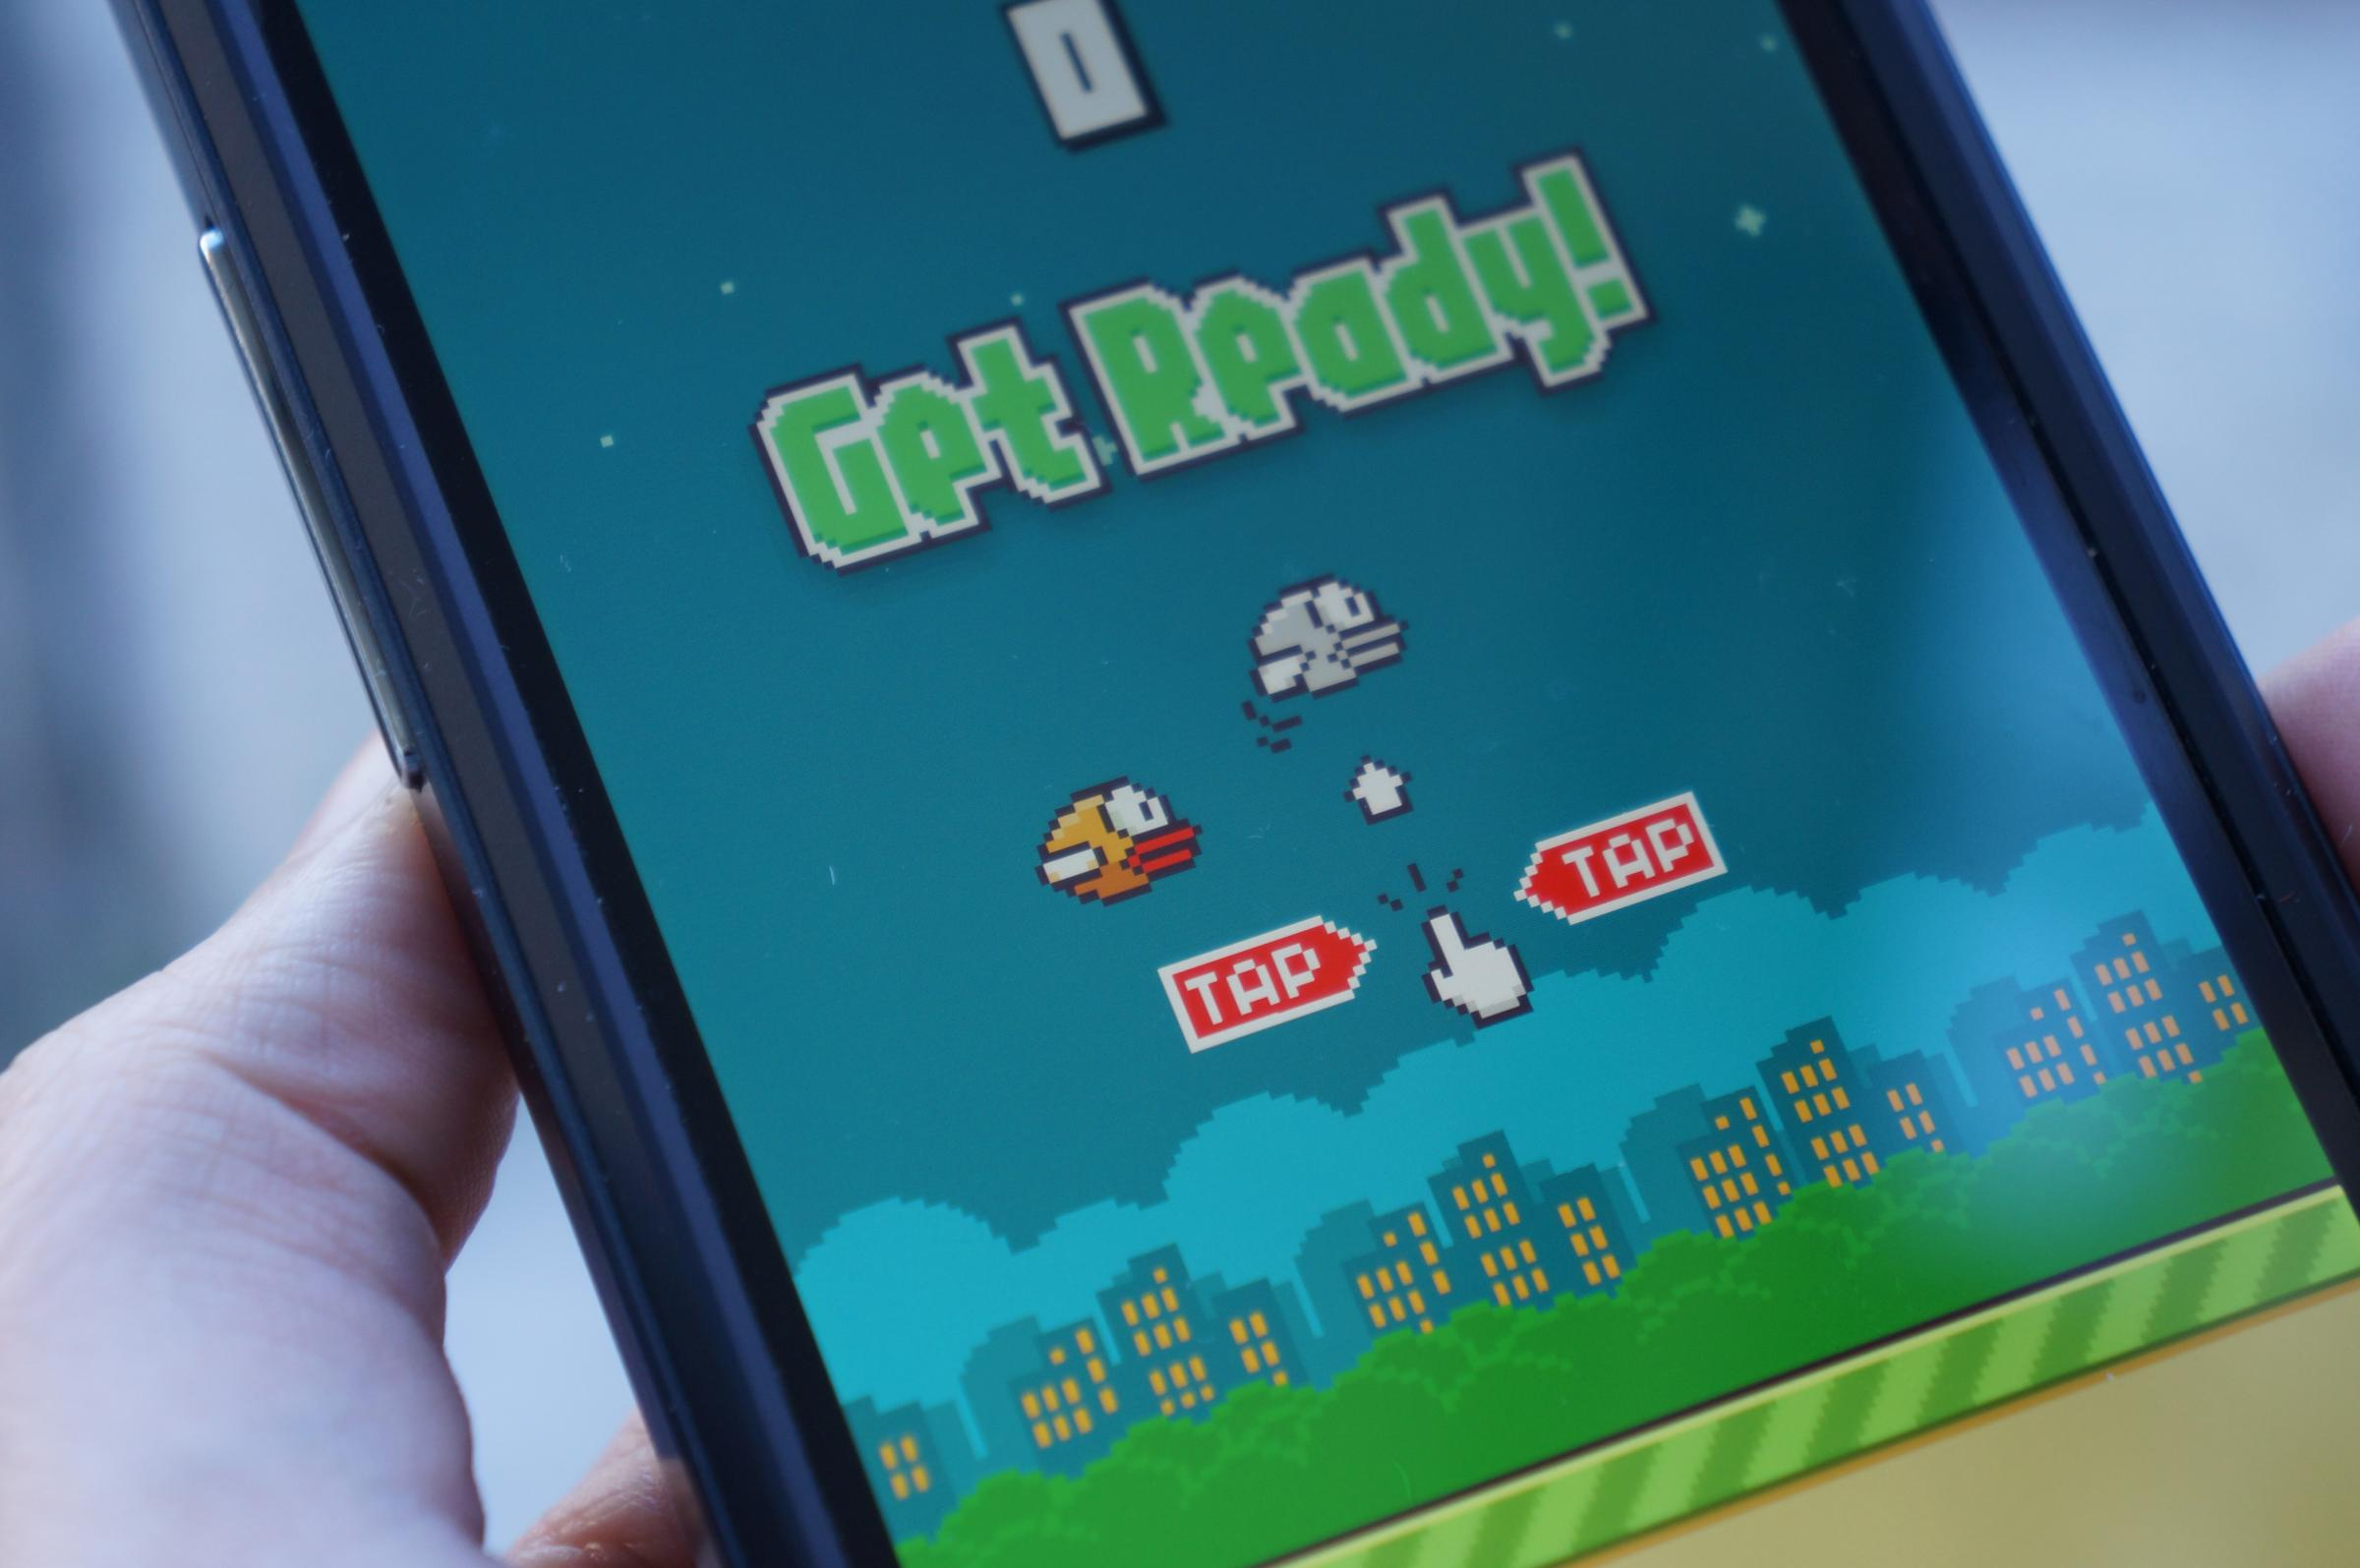 The Flappy Birds game has been massively popular with mobile phone users